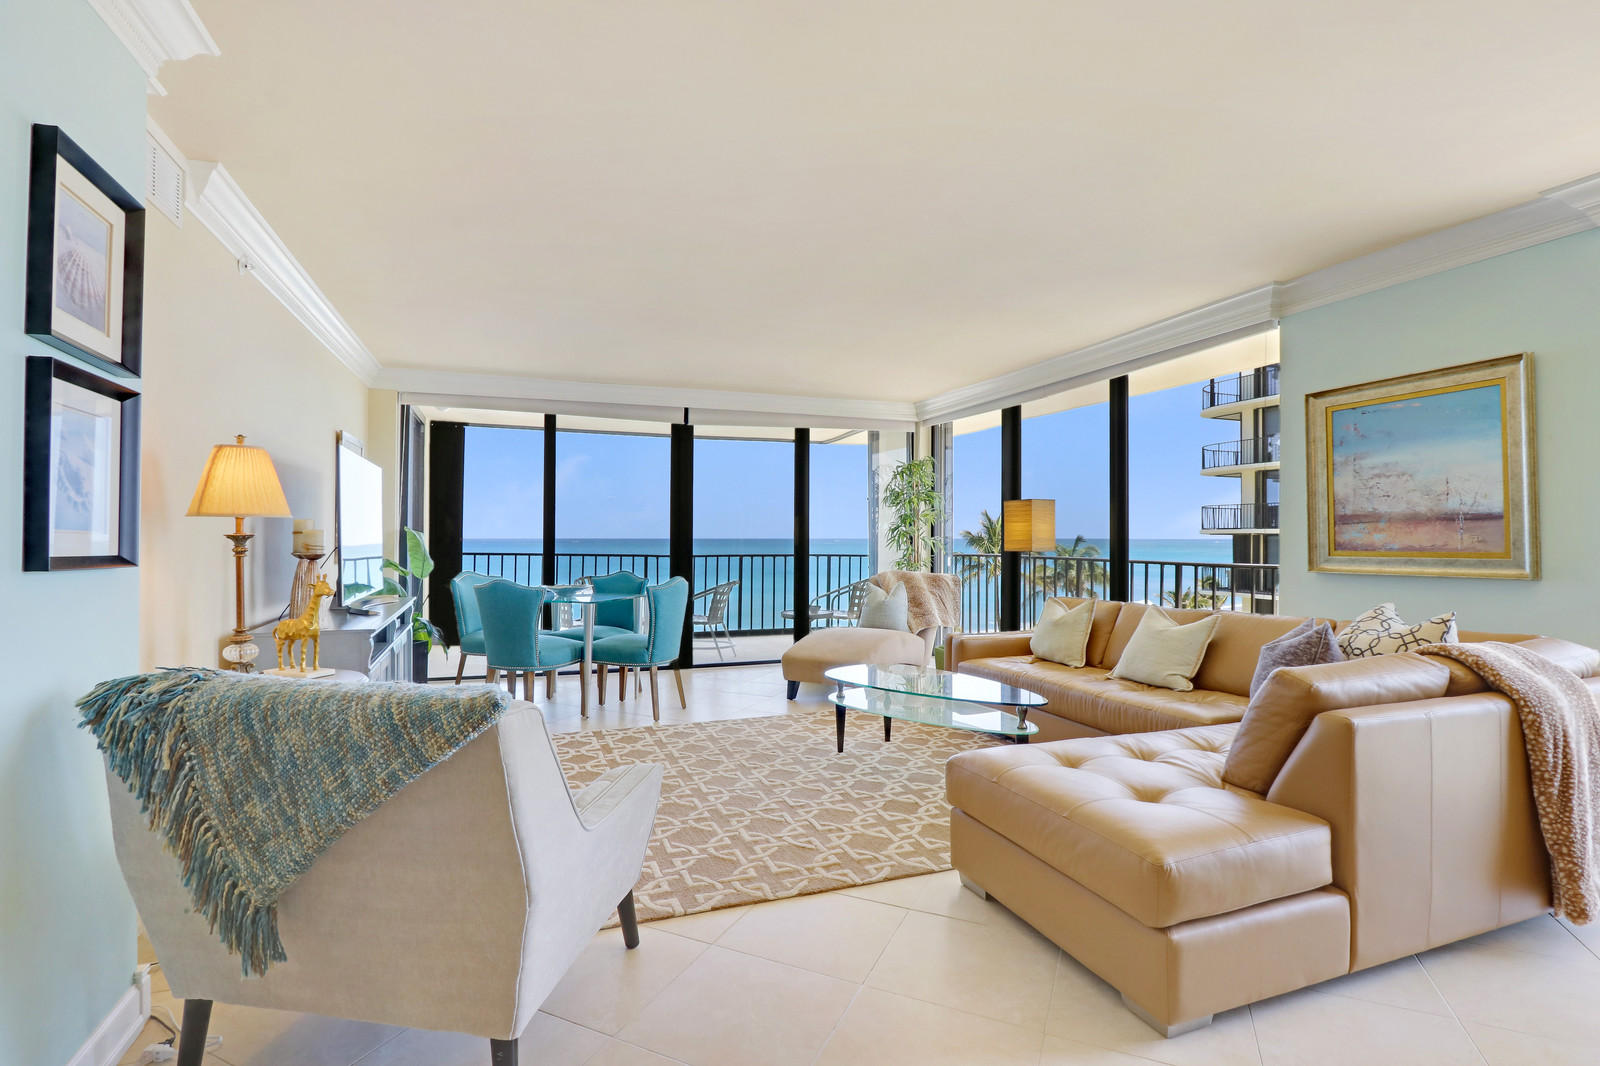 Home for sale in OCEAN TOWERS CONDO APTS Tequesta Florida